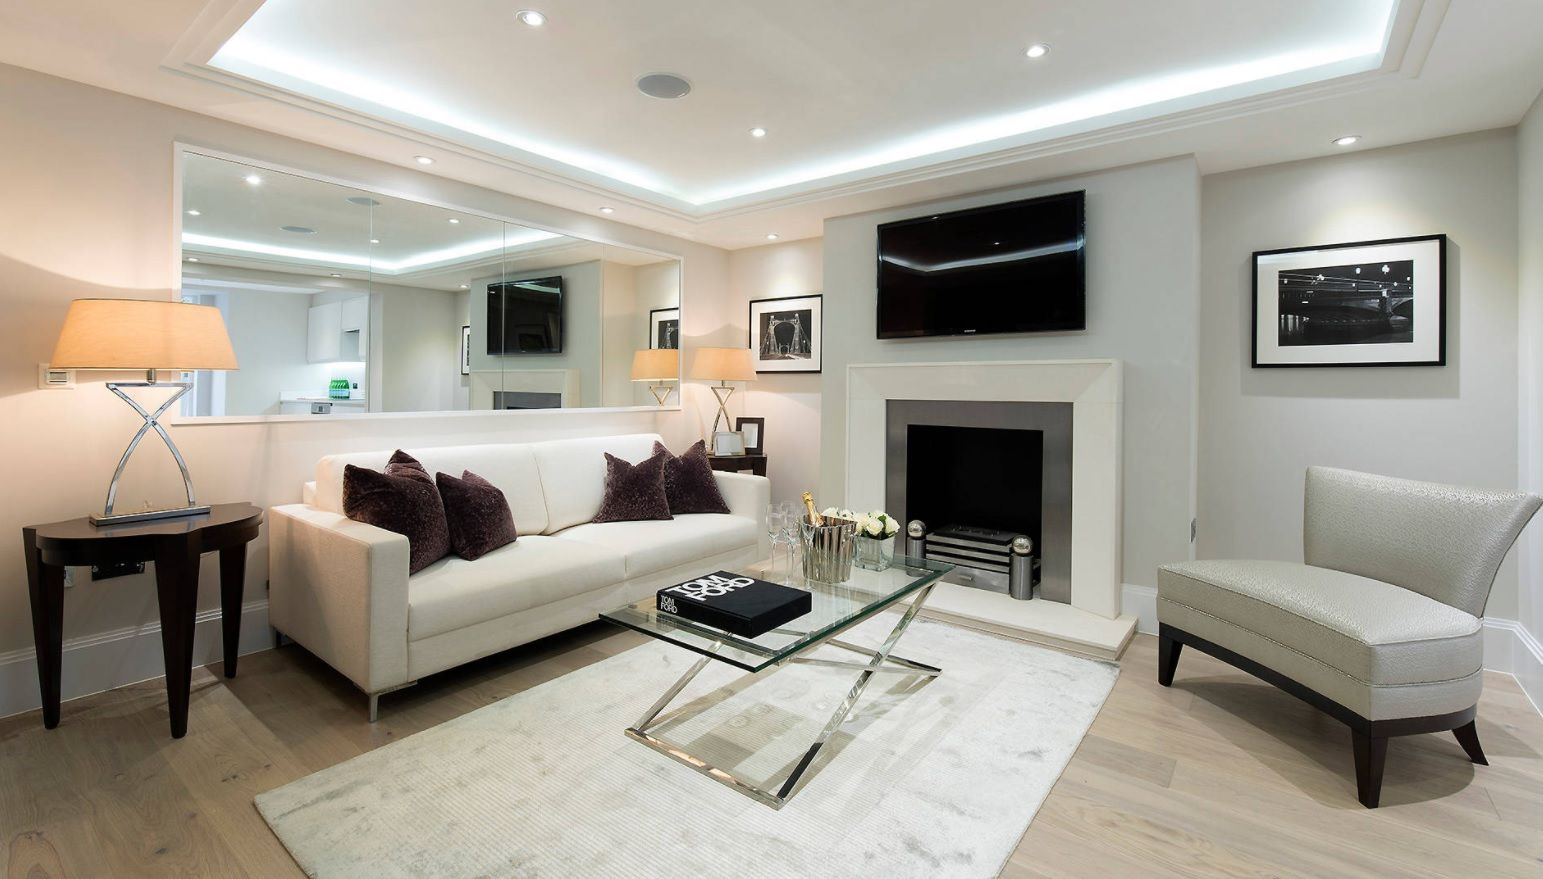 Spectacular hi-tech design for large white colored living room with LED ceiling lighting